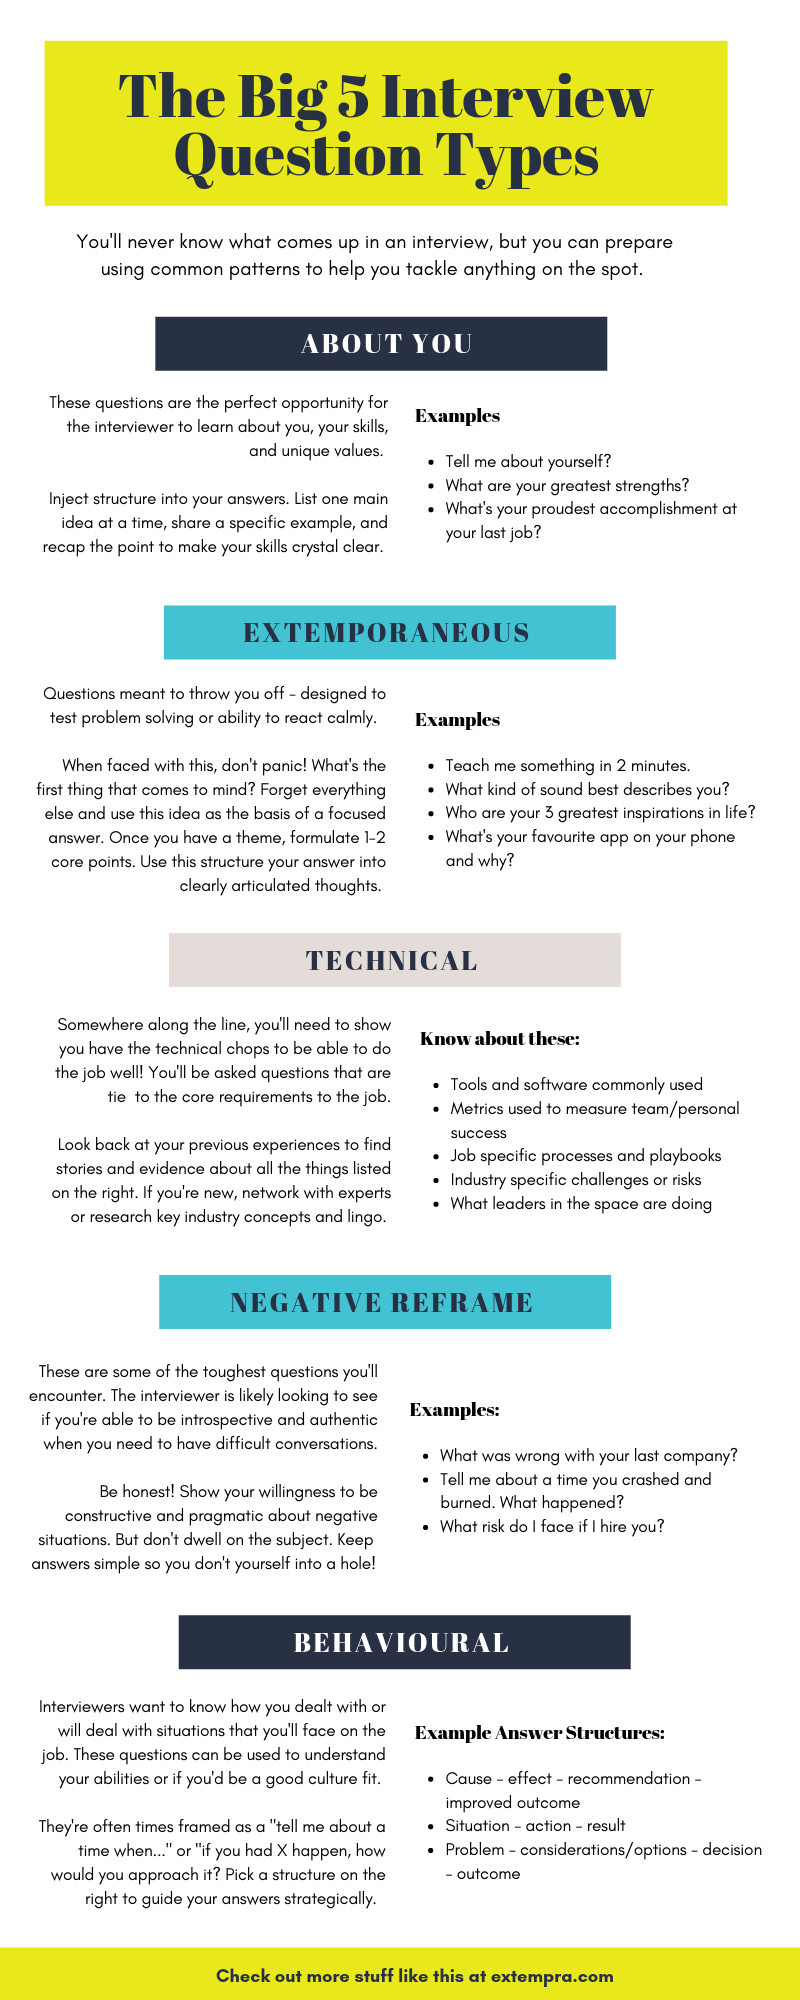 the big 5 interview question types infographic